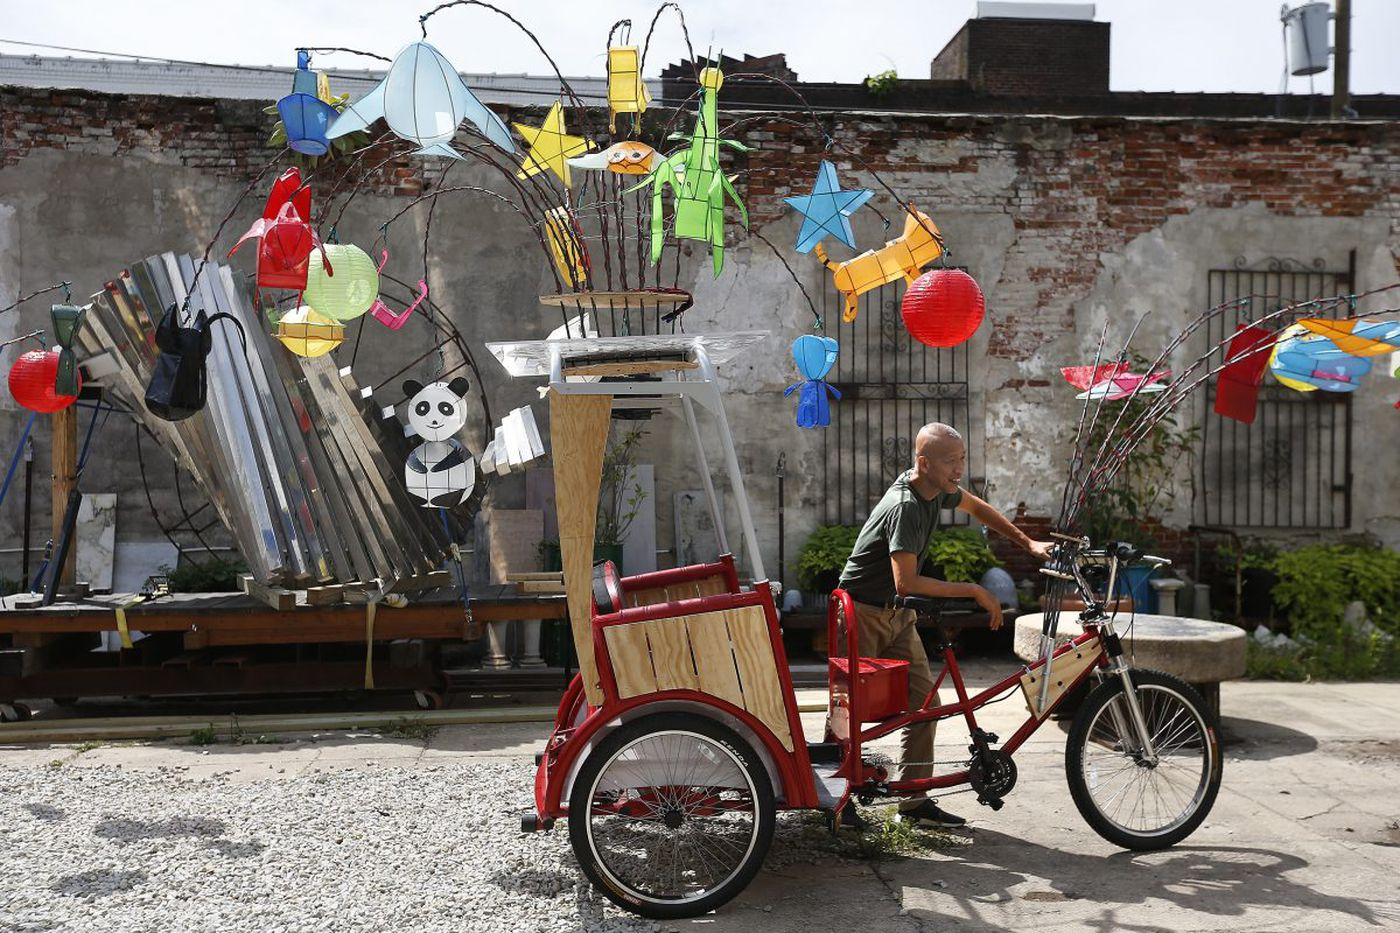 Art you can ride in: Beijing Olympics' fireworks guy is set to send glowing pedicabs up the Parkway